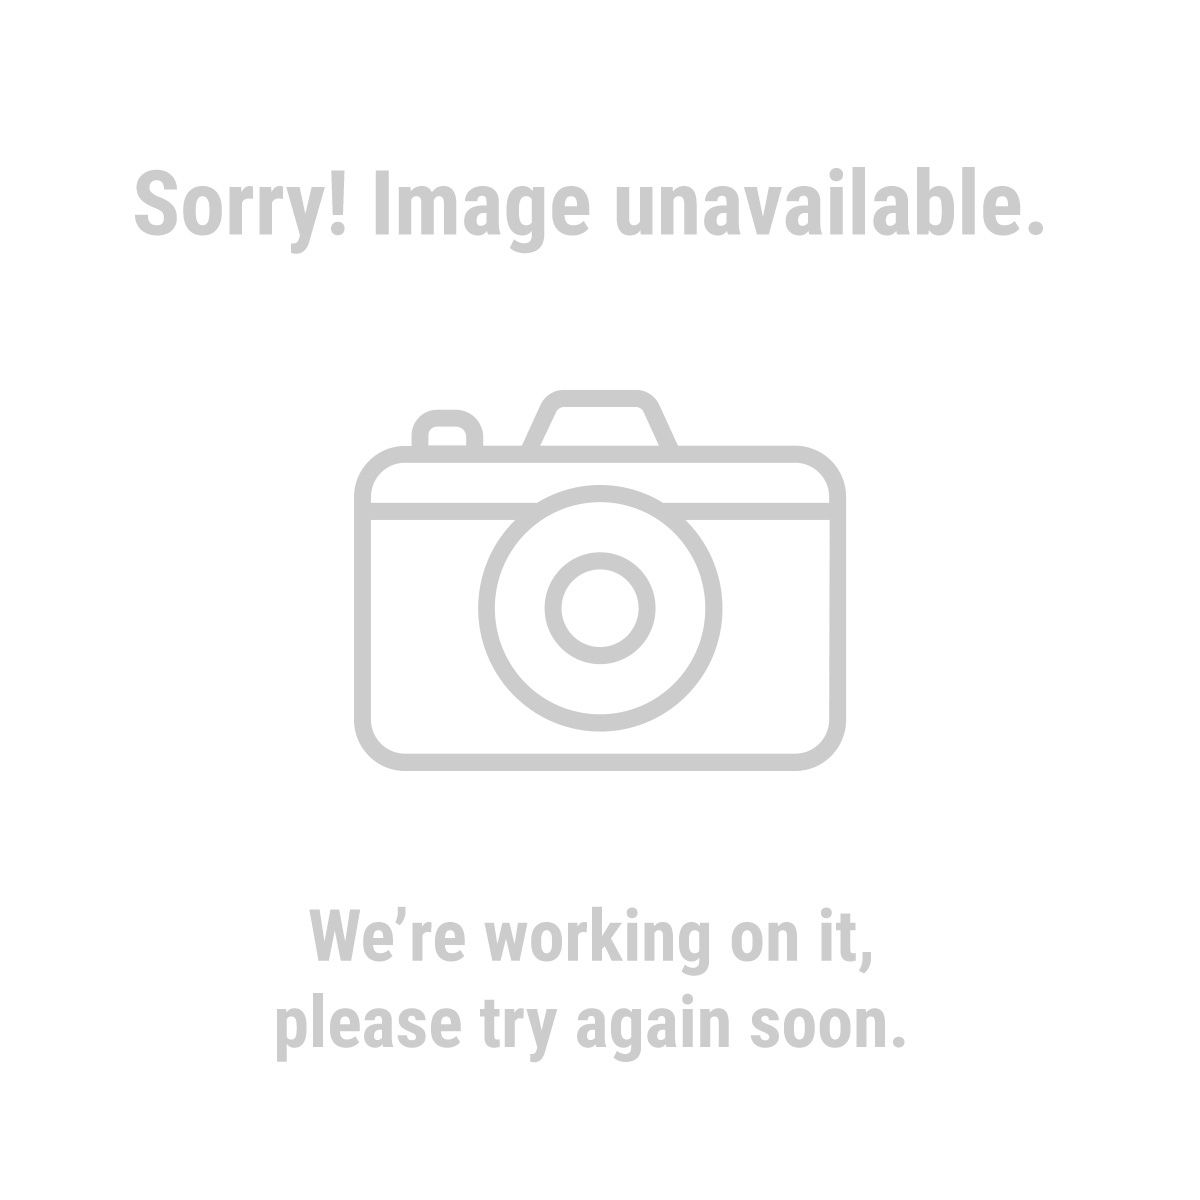 Drill Master 9475 13 Piece High Speed Steel Drill Bit Set